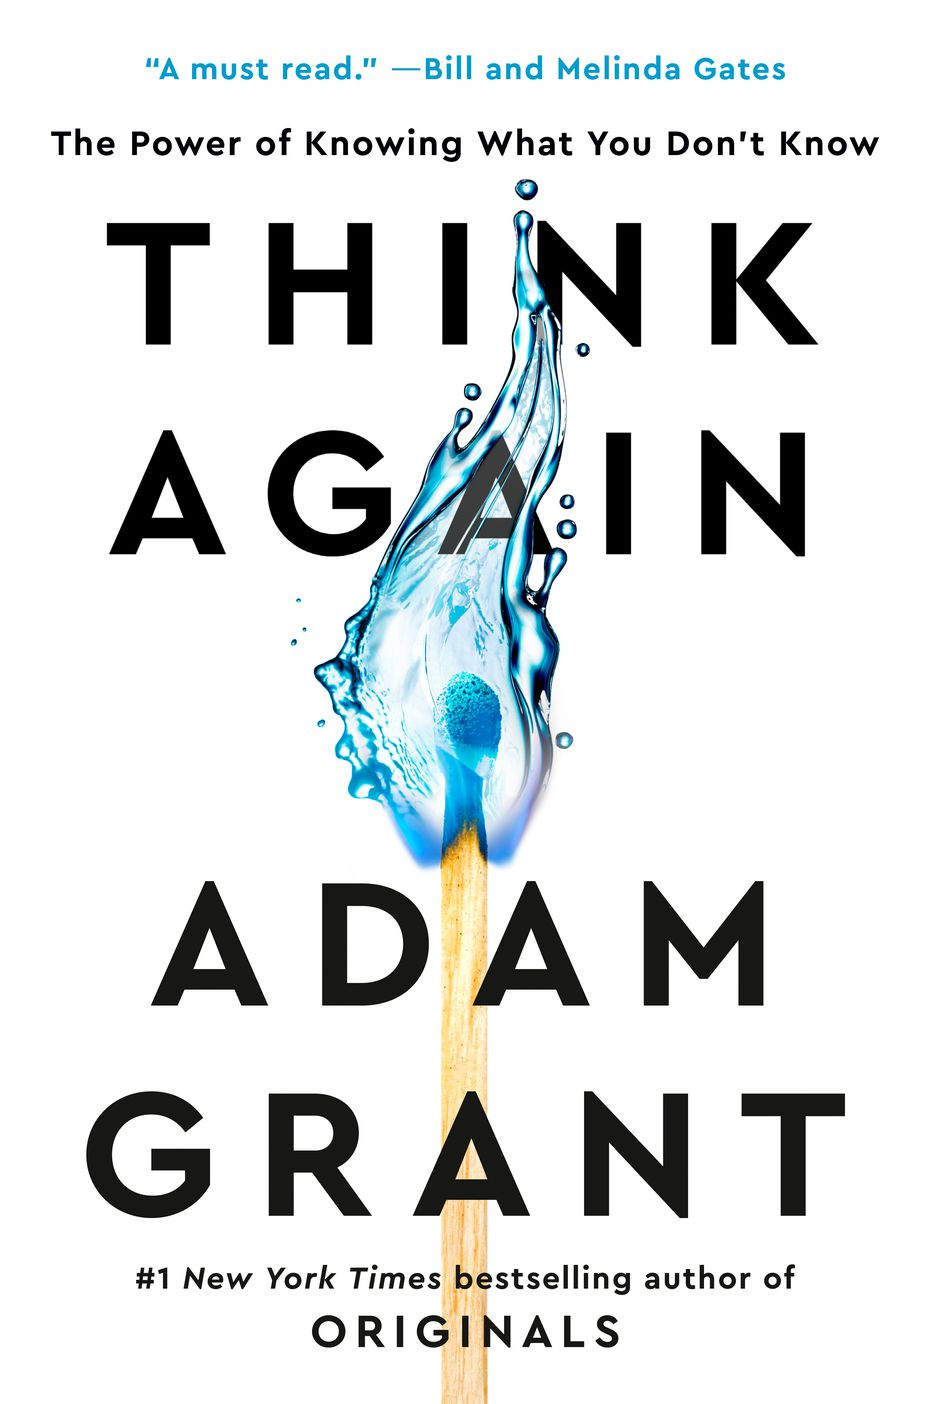 """In """"Think Again: The Power of Knowing What You Don't Know,"""" author Adam Grant investigates how we can embrace the joy of being wrong and bring nuance to charged conversations."""